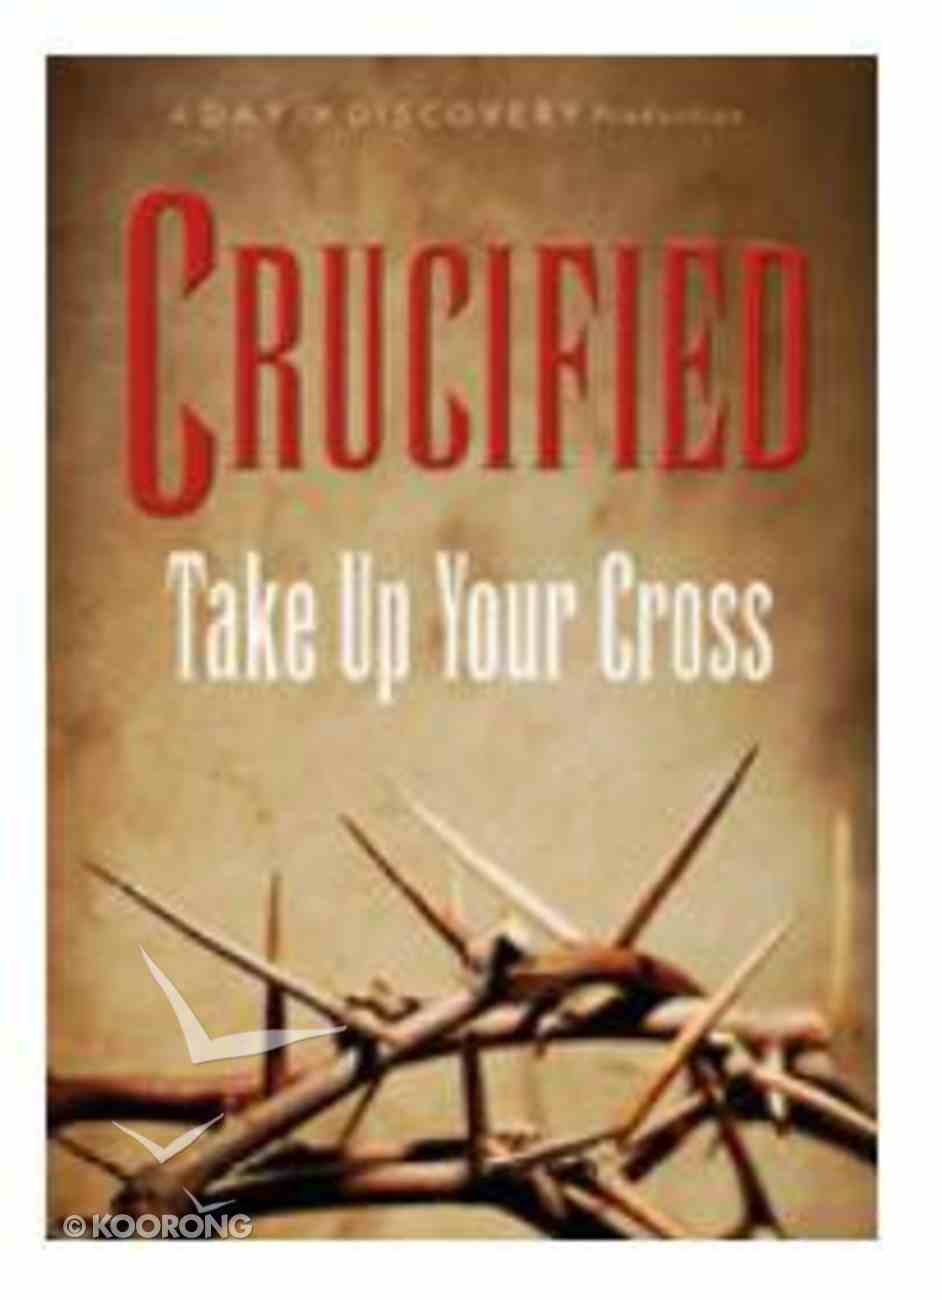 Crucified: Take Up Your Cross DVD